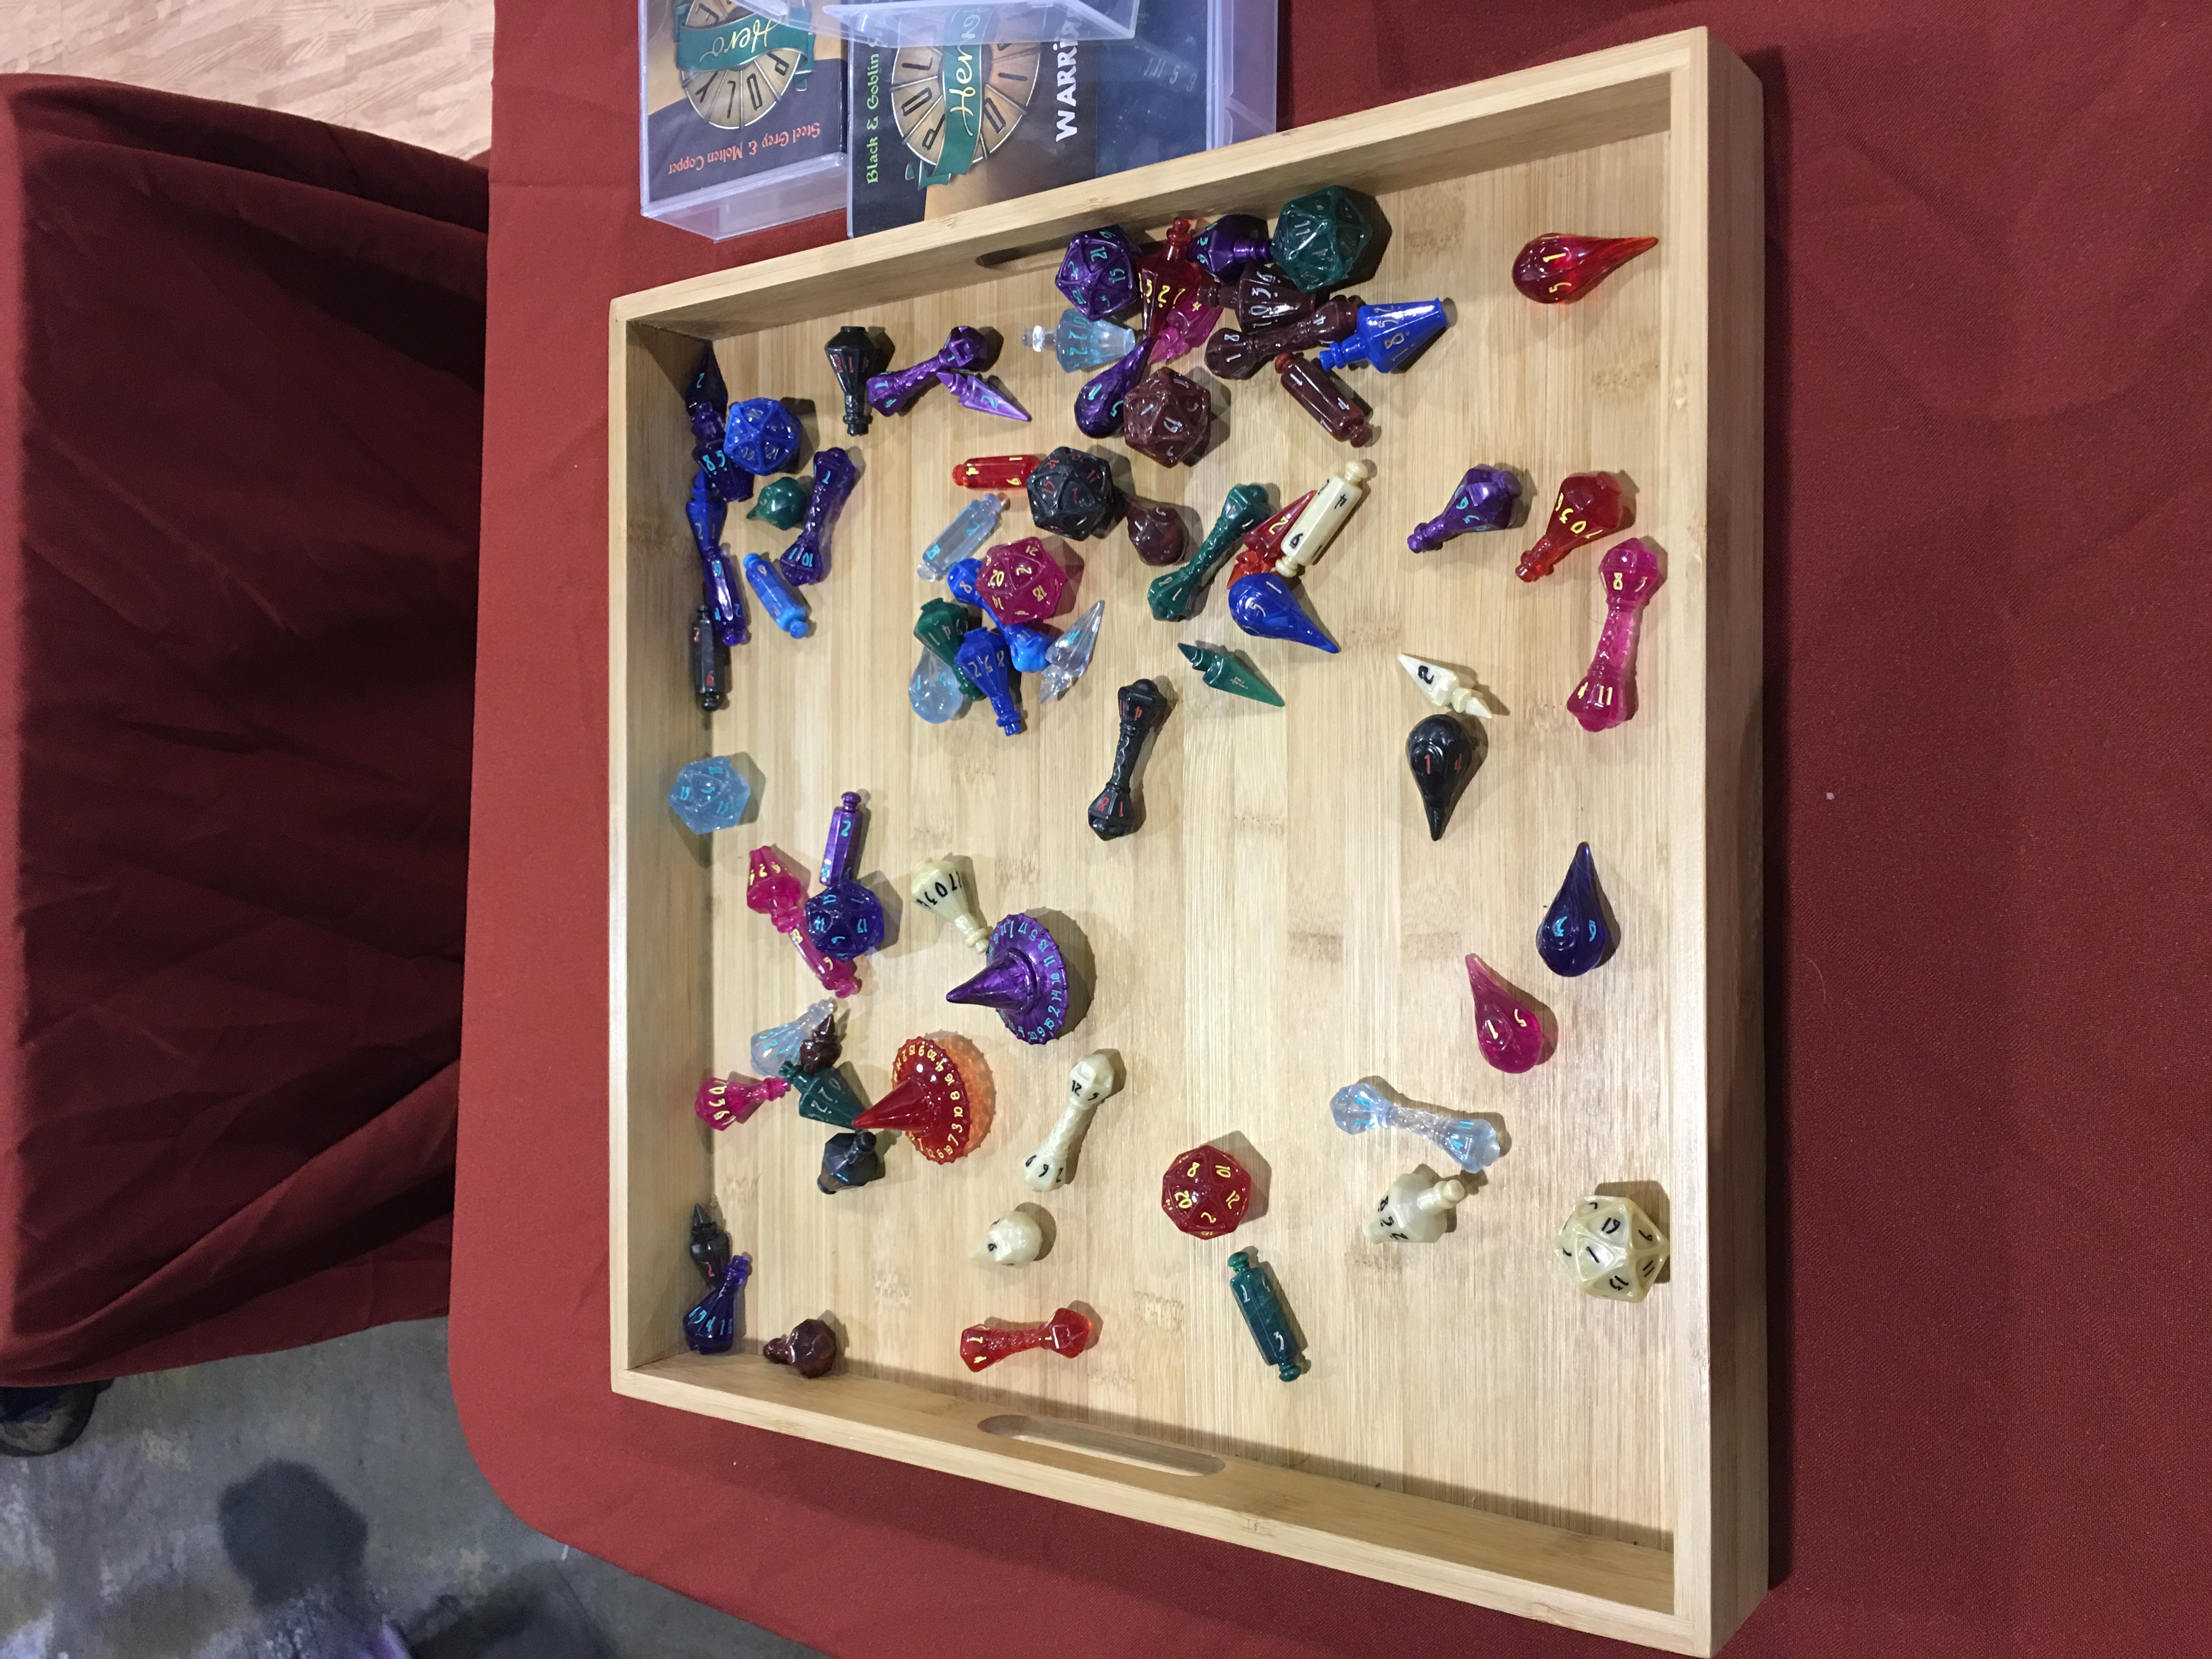 Pre-Release Dice on Display